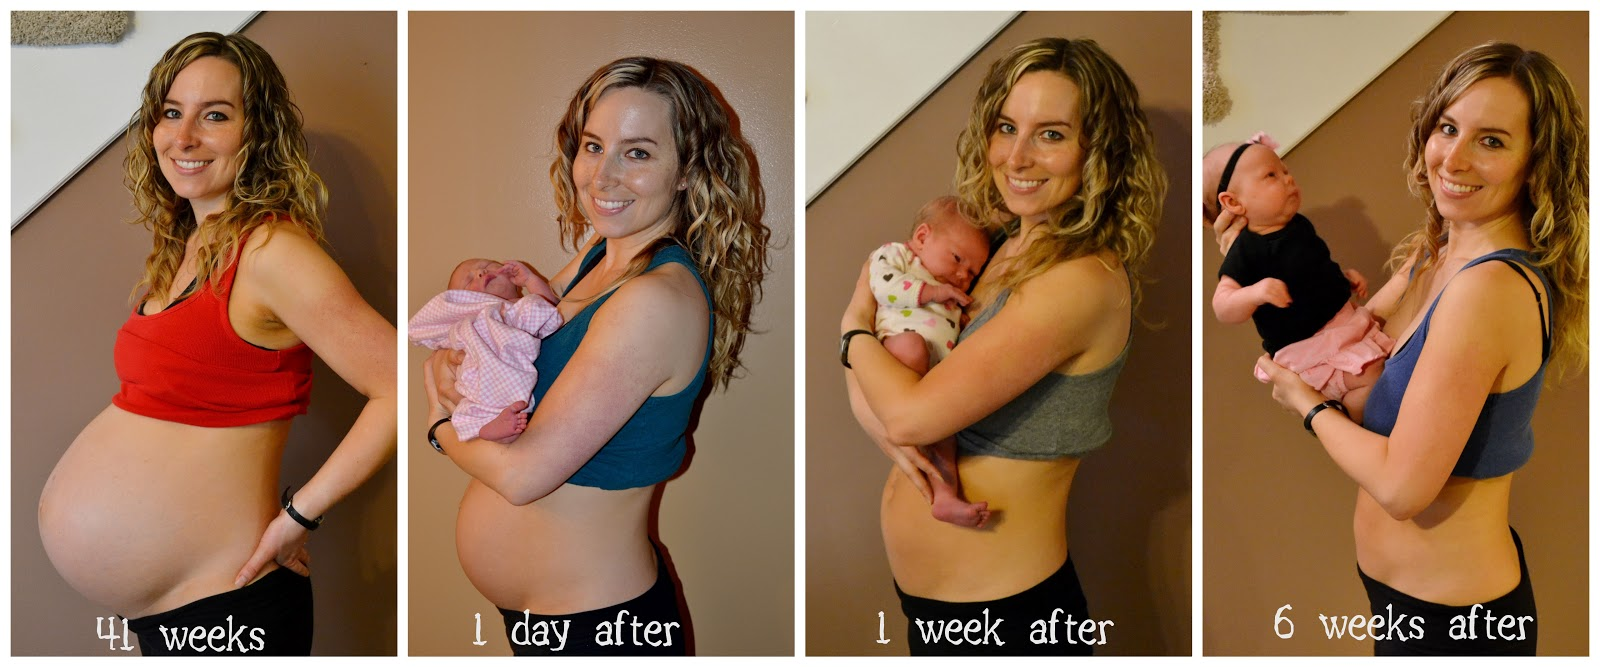 tips-on-how-to-lose-weight-after-pregnancy